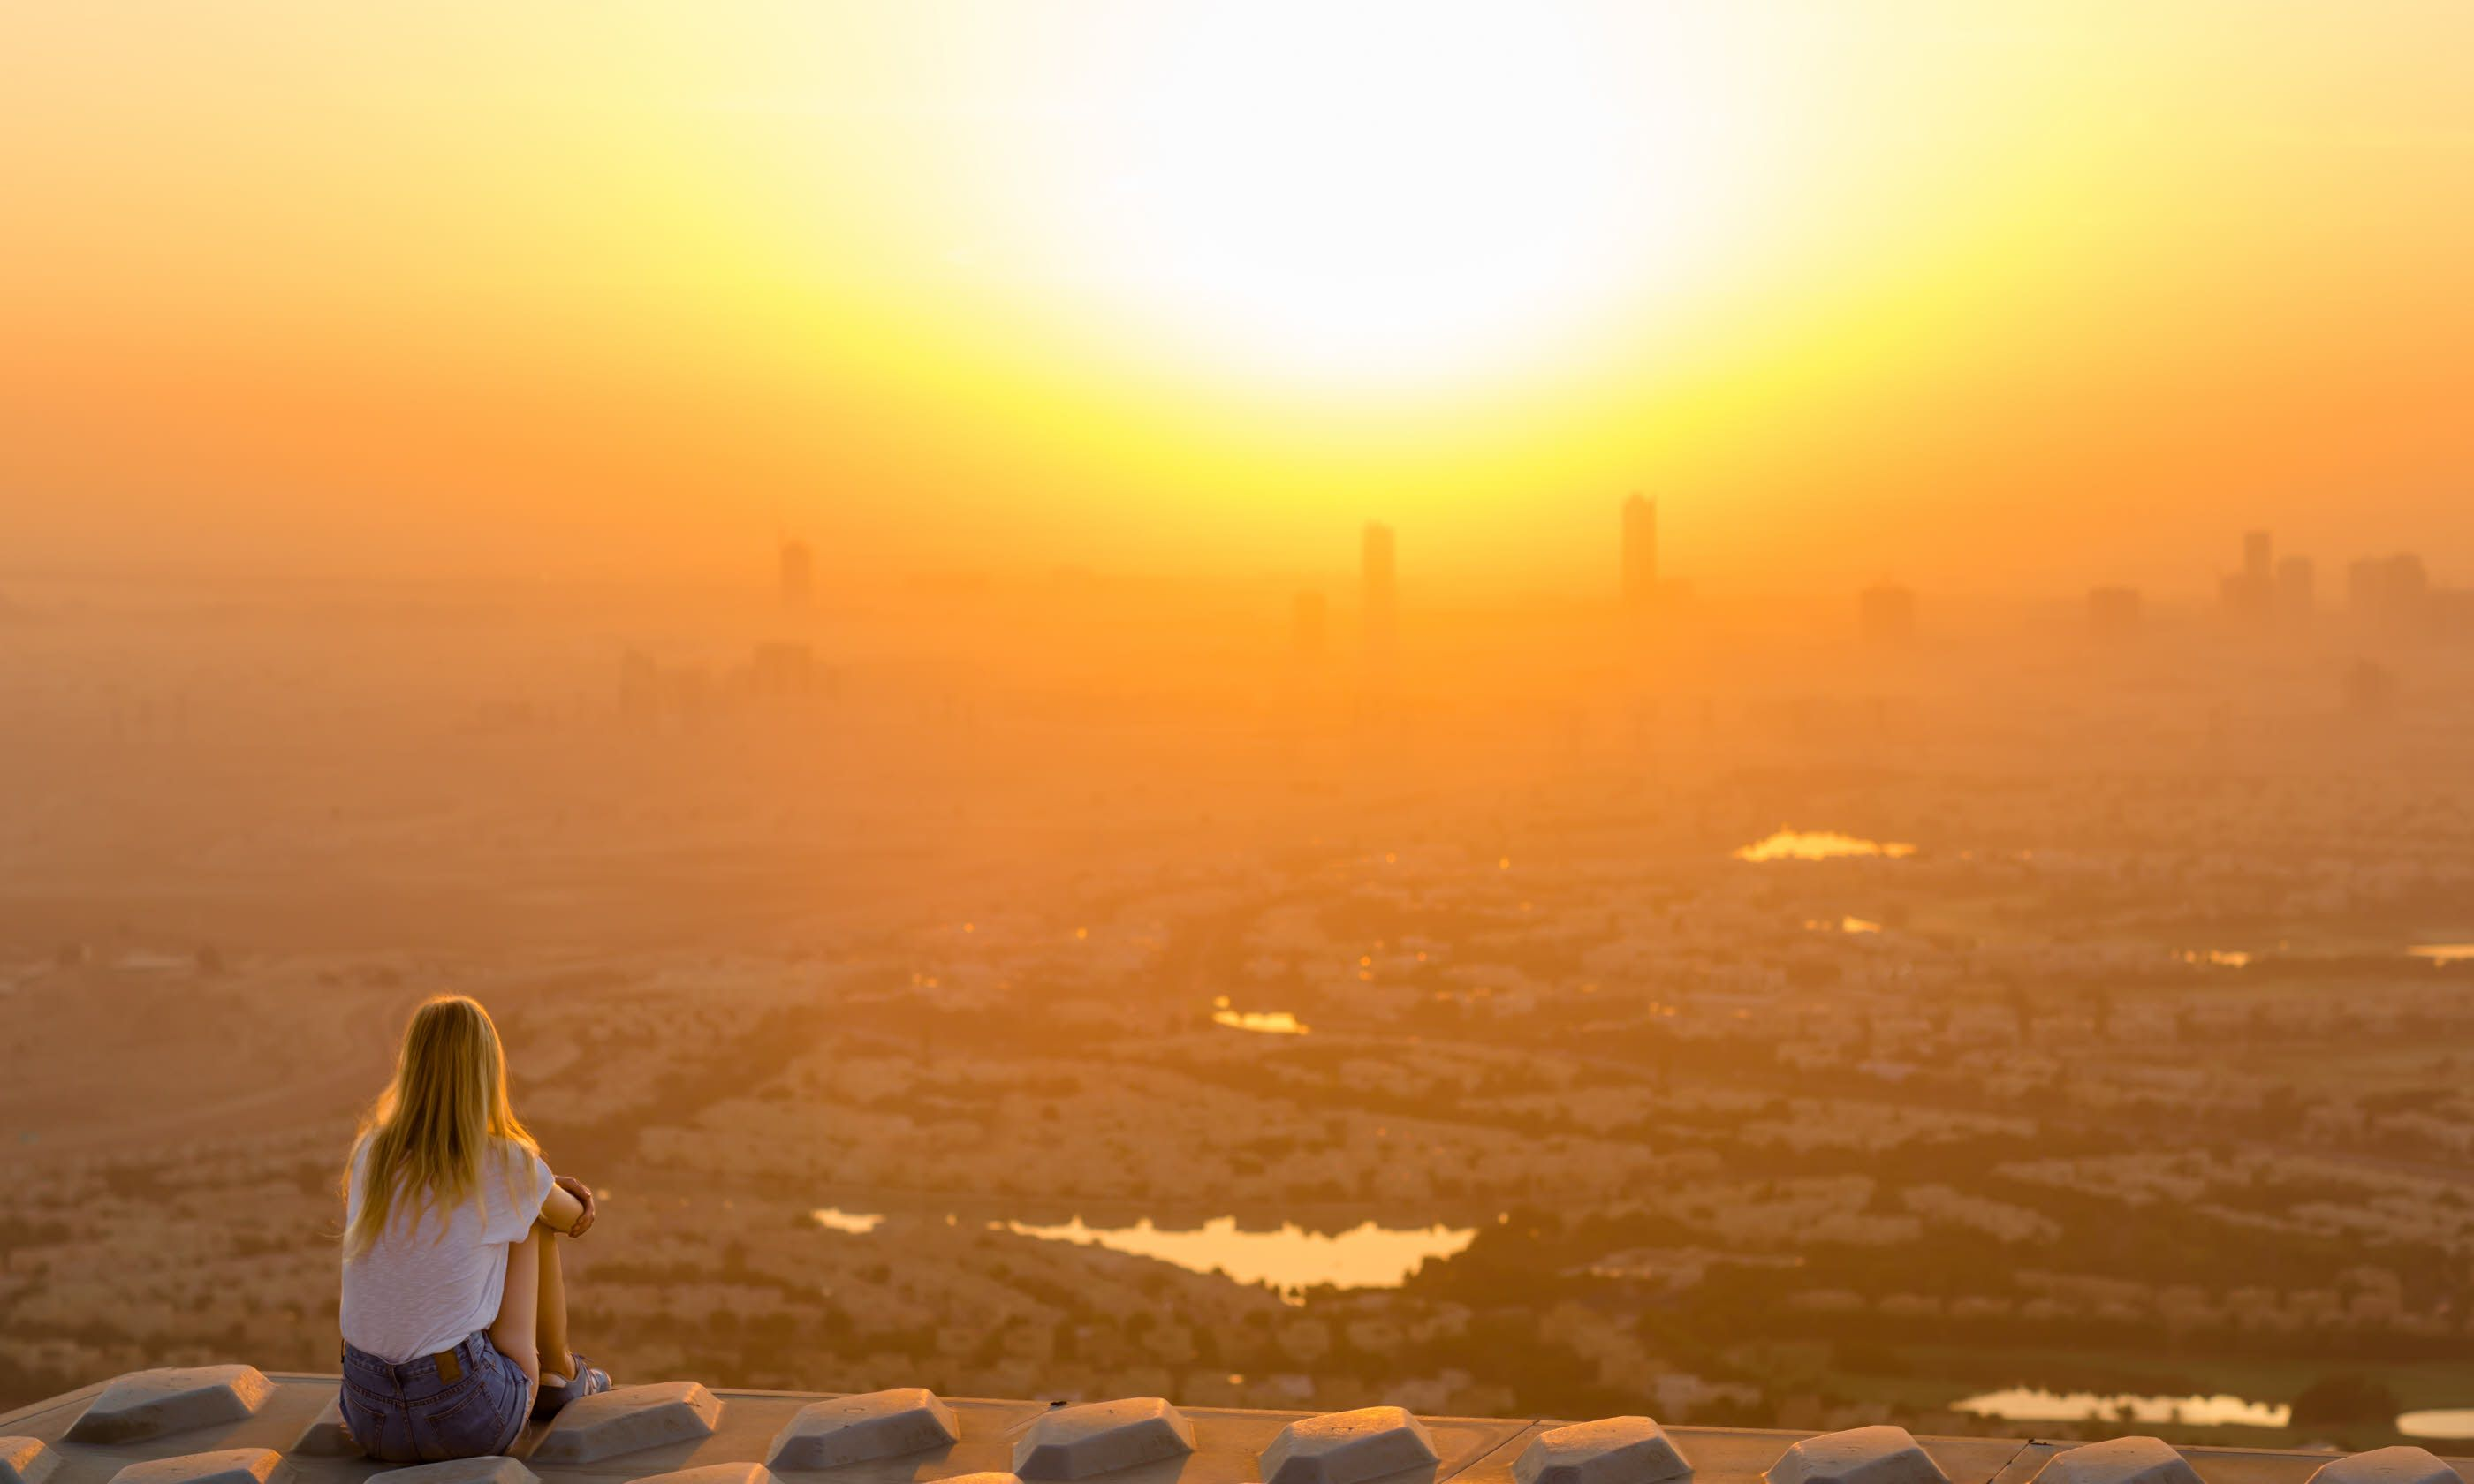 Woman overlooking the city at sunrise (Shutterstock)